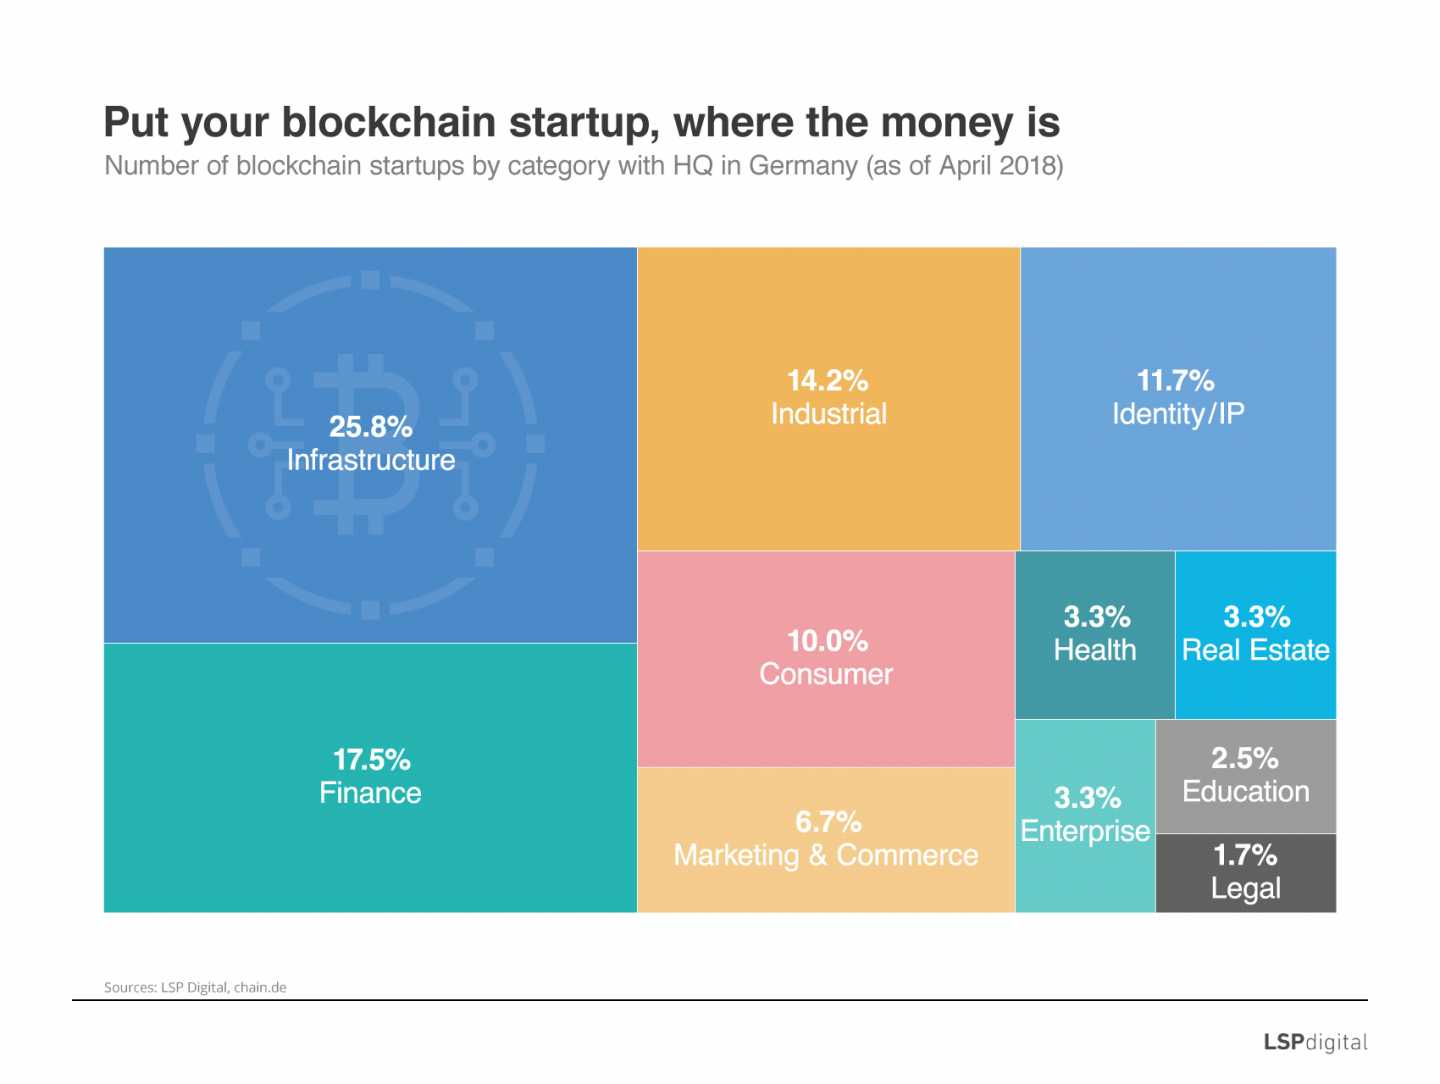 Ecosystem of blockchain-focused business models in Germany